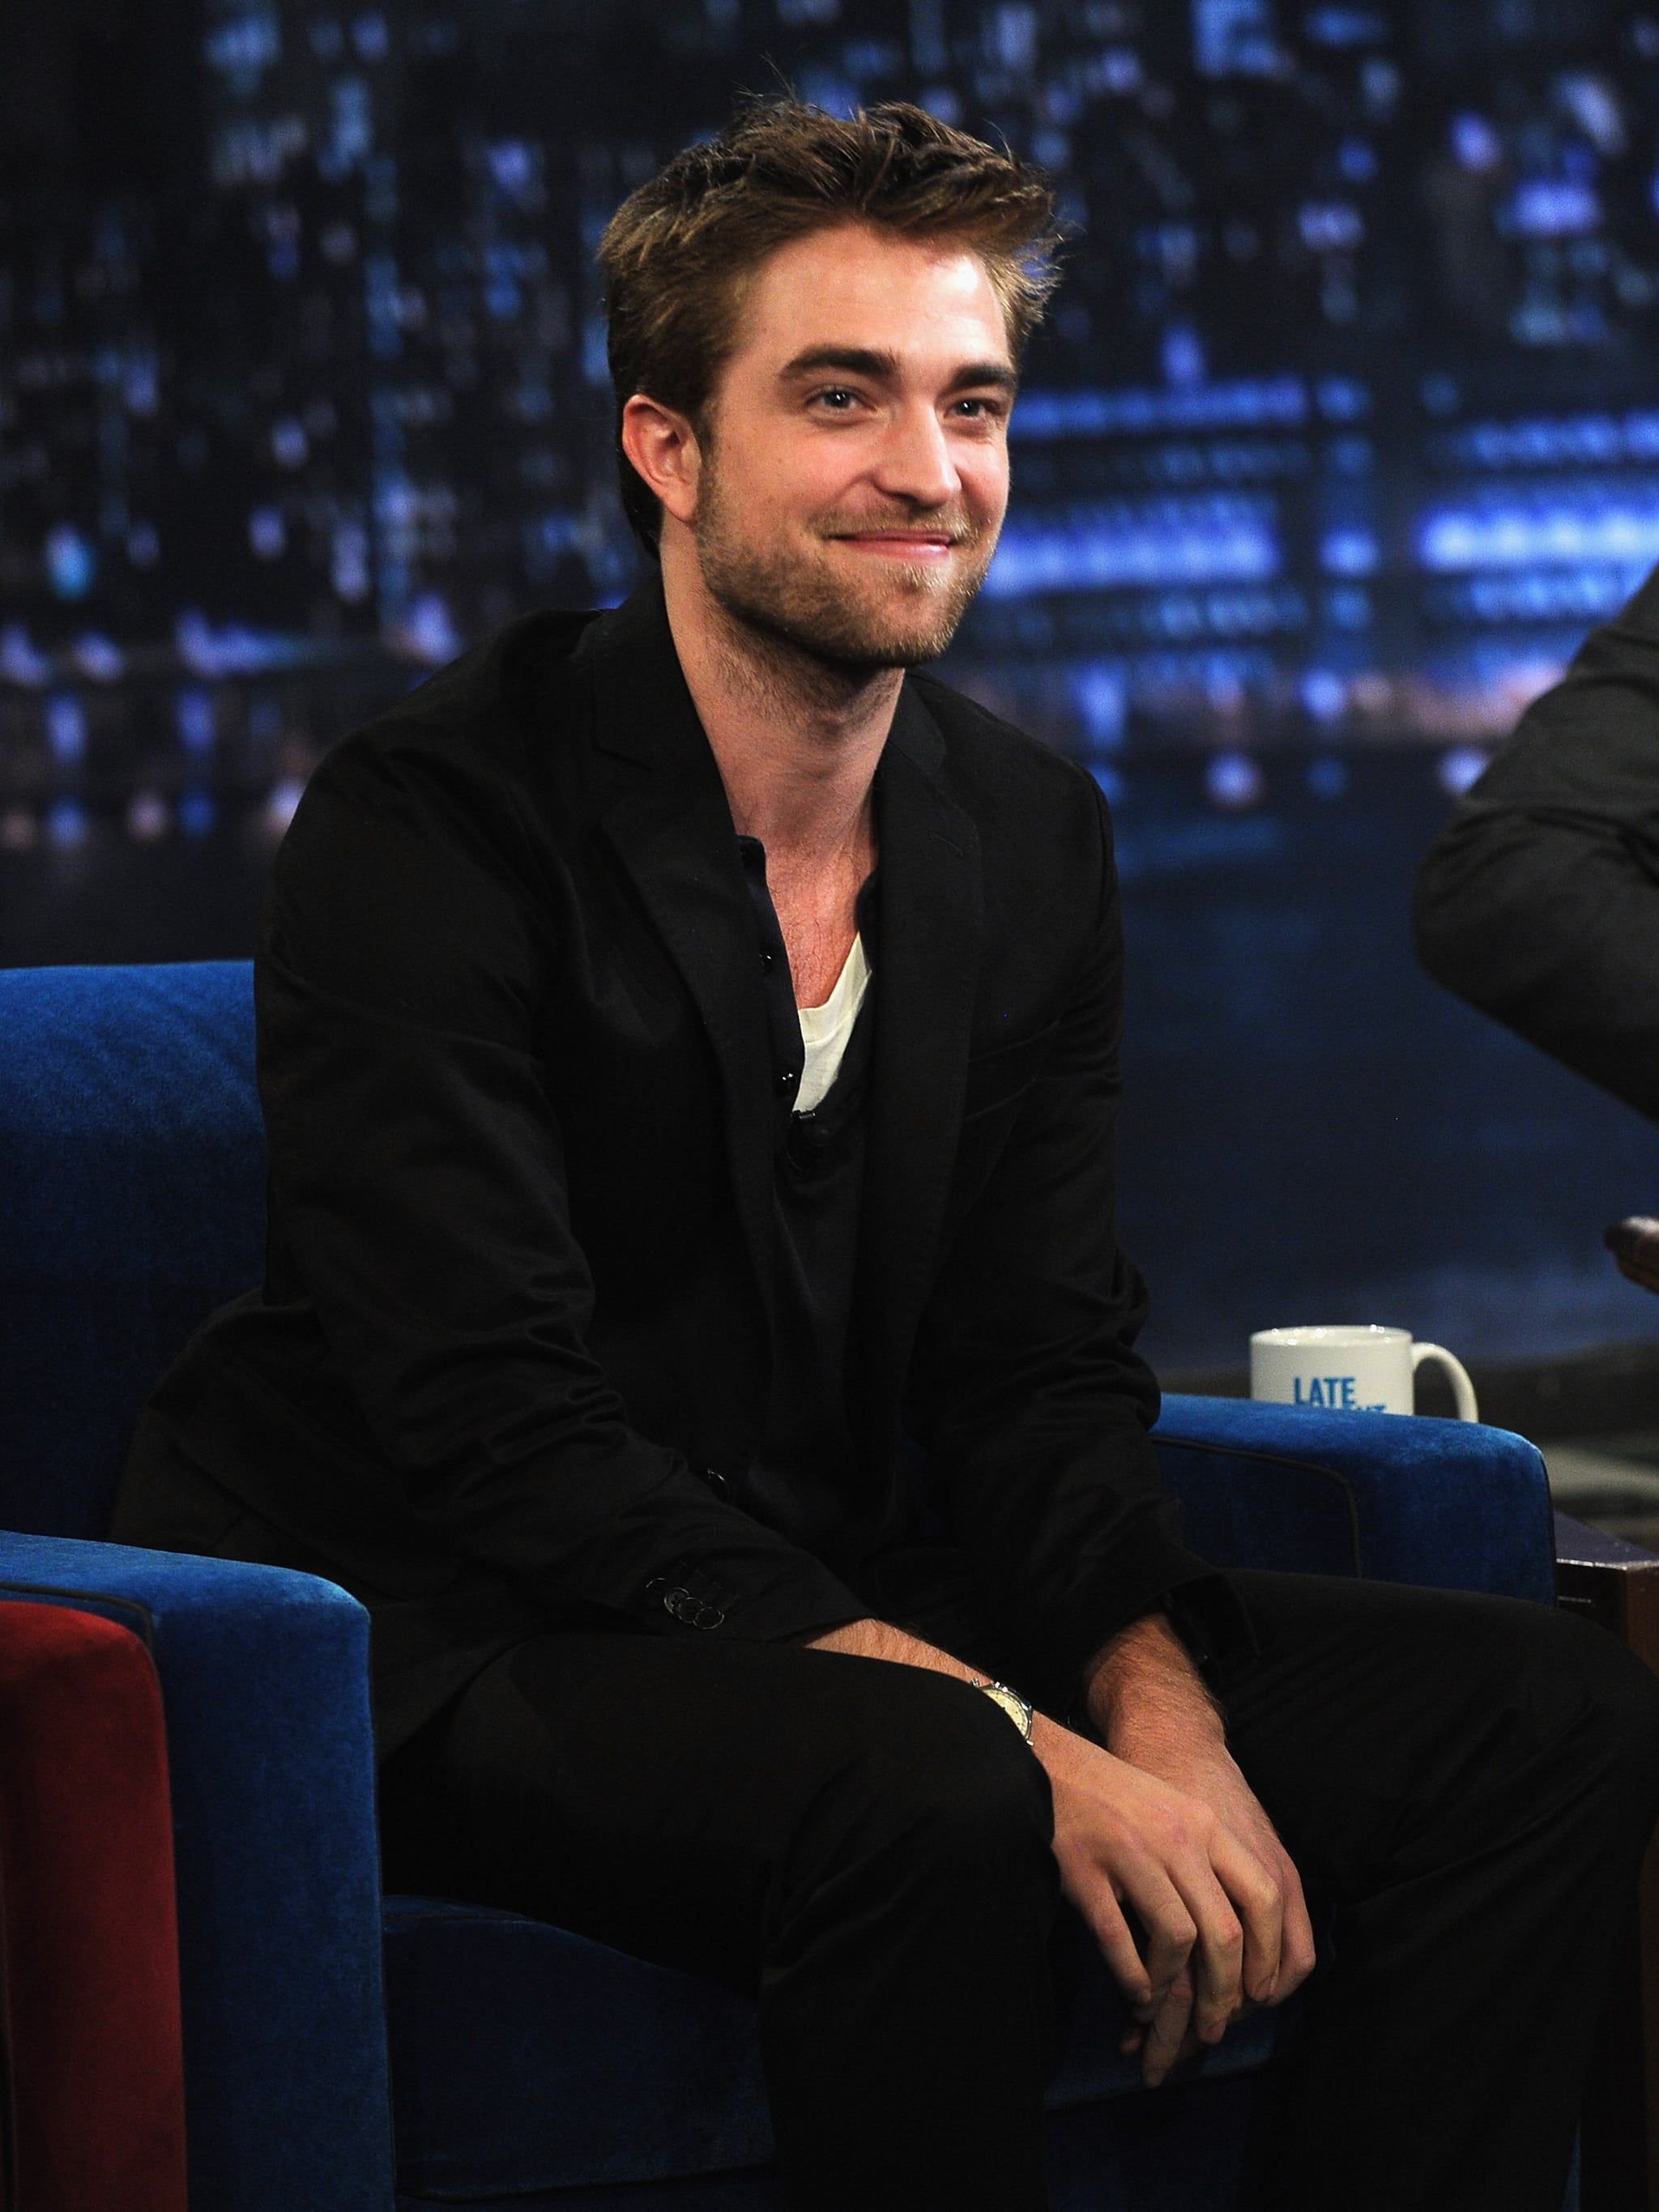 Rob smiled during their chat.